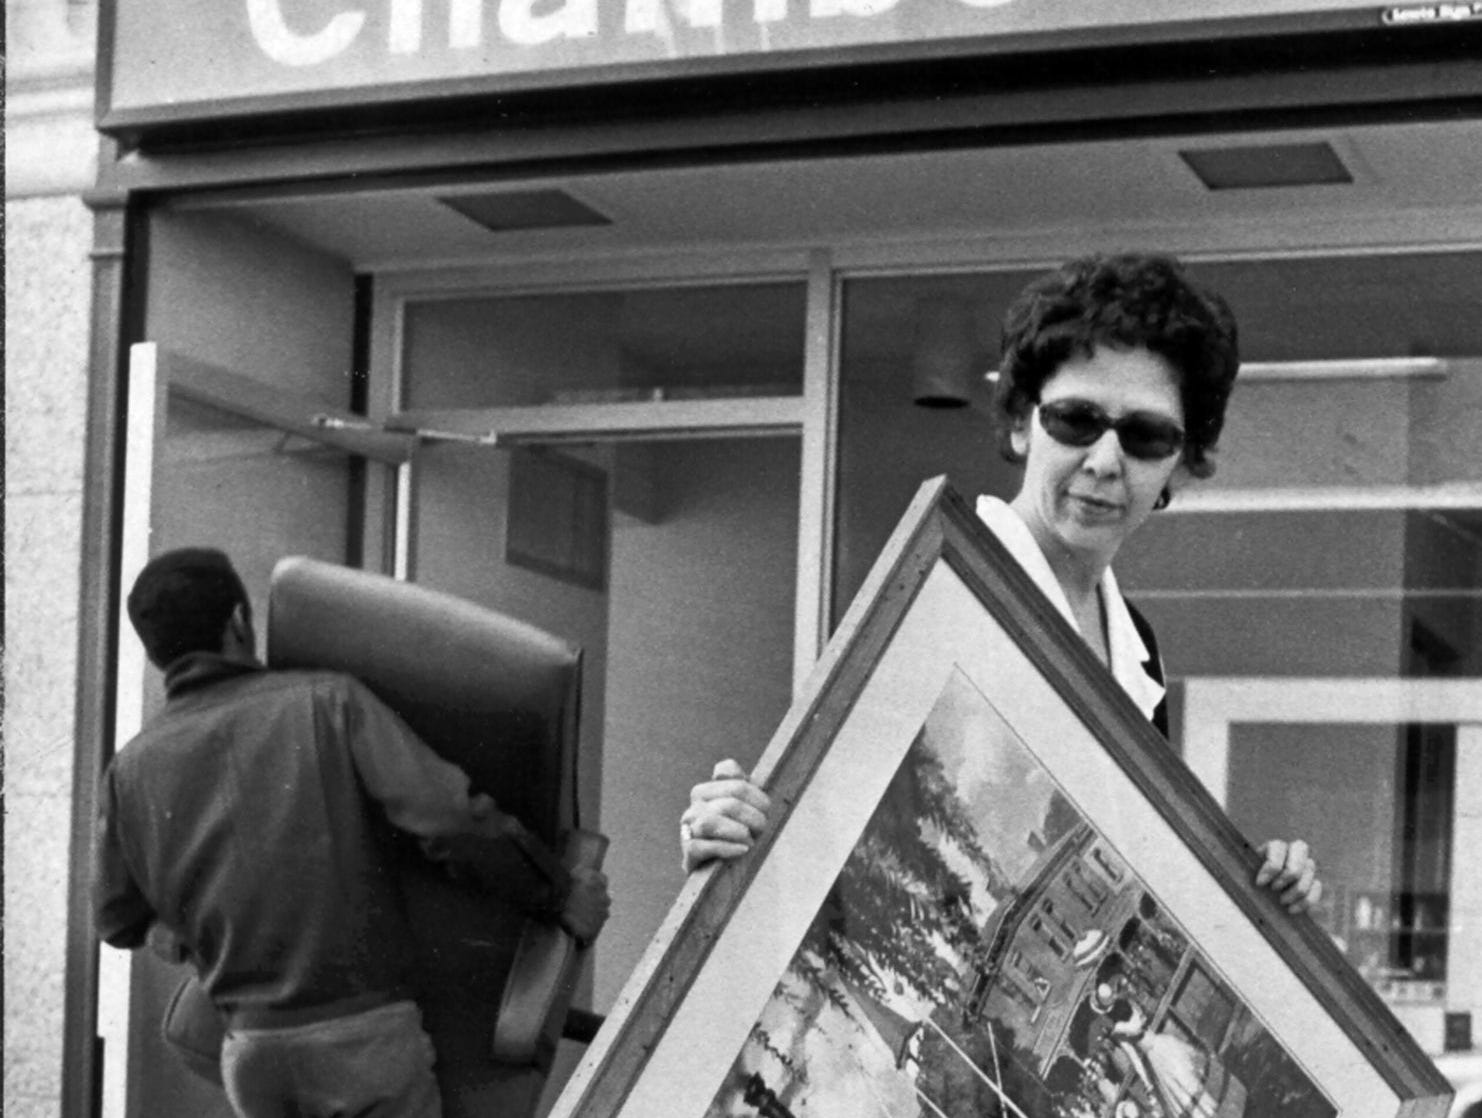 Mrs. Jo Barron of the Downtown Council of the Memphis Area Chamber of Commerce helped the organization move into its new digs at the old Boyle Investment Co. building at 42 South Second Street on March 14, 1974. Boyle moved east and the Chamber moved from its old location at the Southern Peabody.